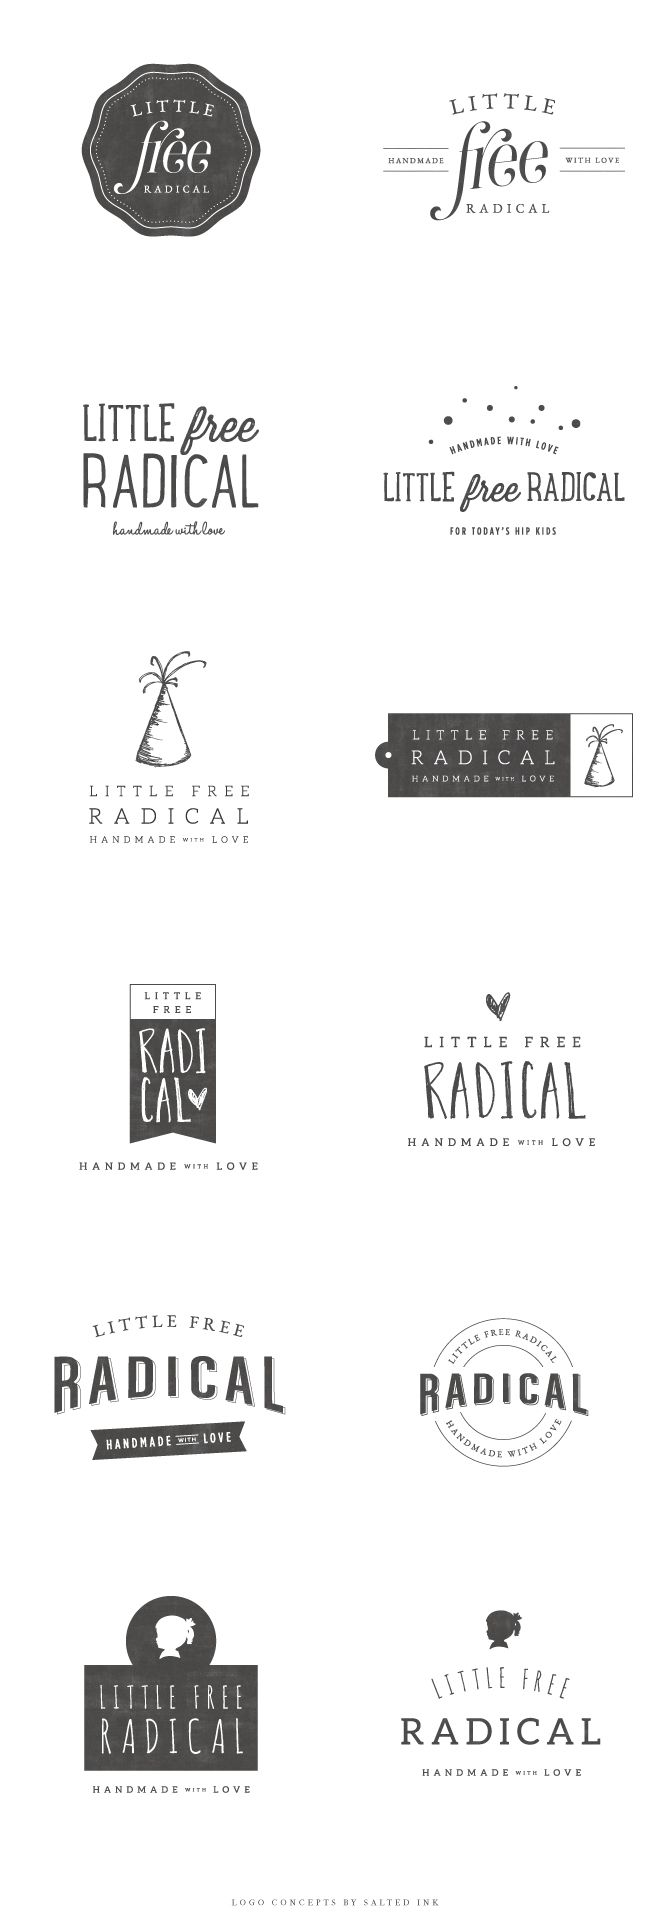 Brand Launch – Little Free Radical | Logo Concepts by Salted Ink | www.saltedink.com | #logo #concepts #brand #branding